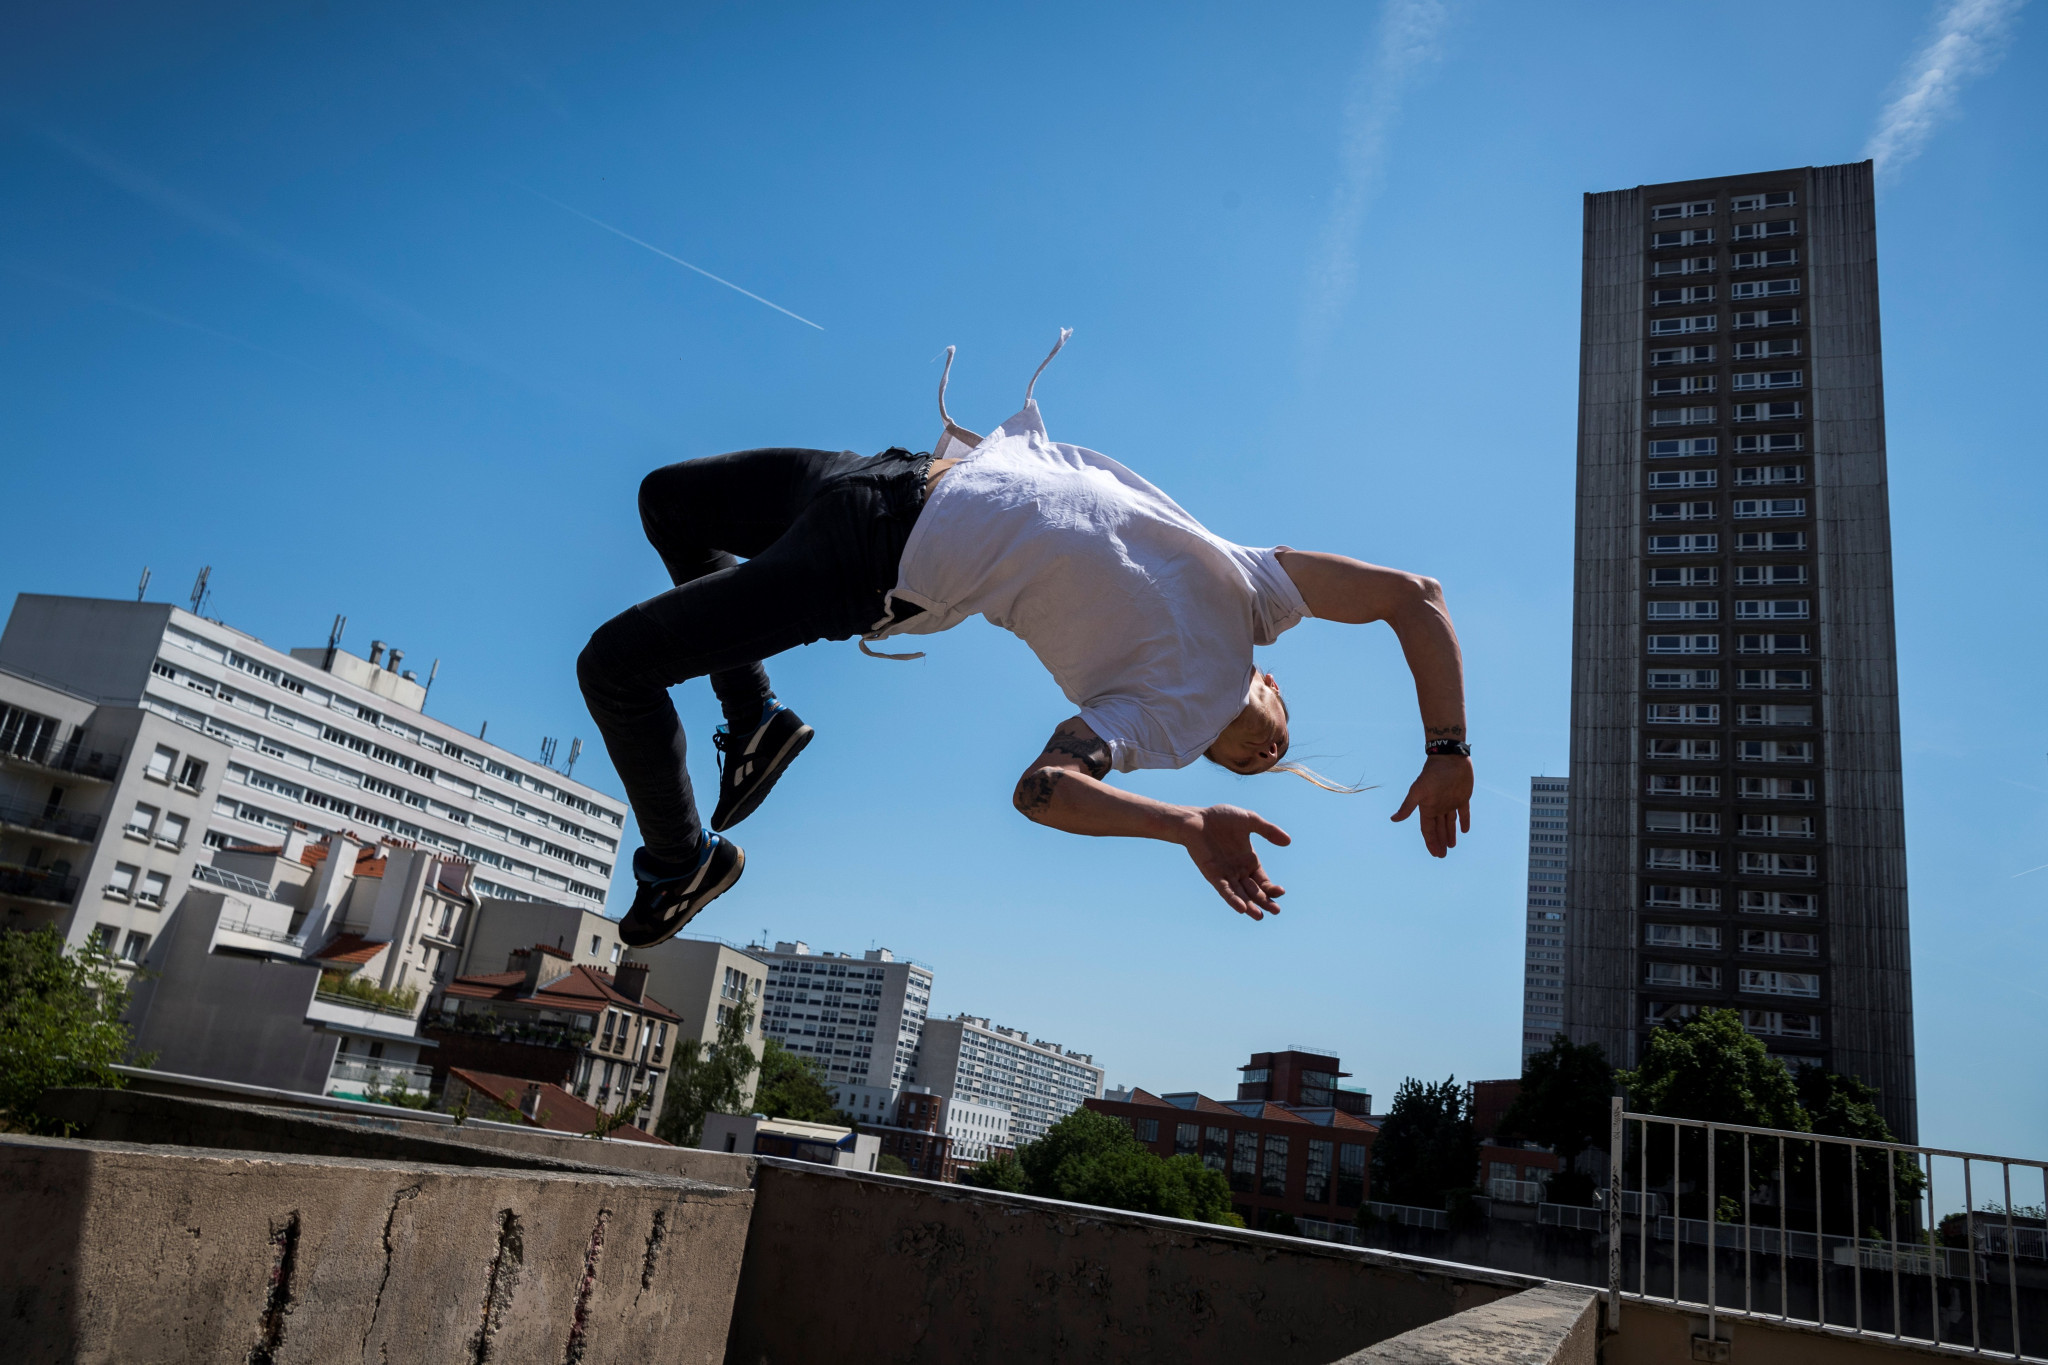 France's Johan Tonnoir is targeting redemption at the Parkour World Cup in Montpellier ©GettyImages